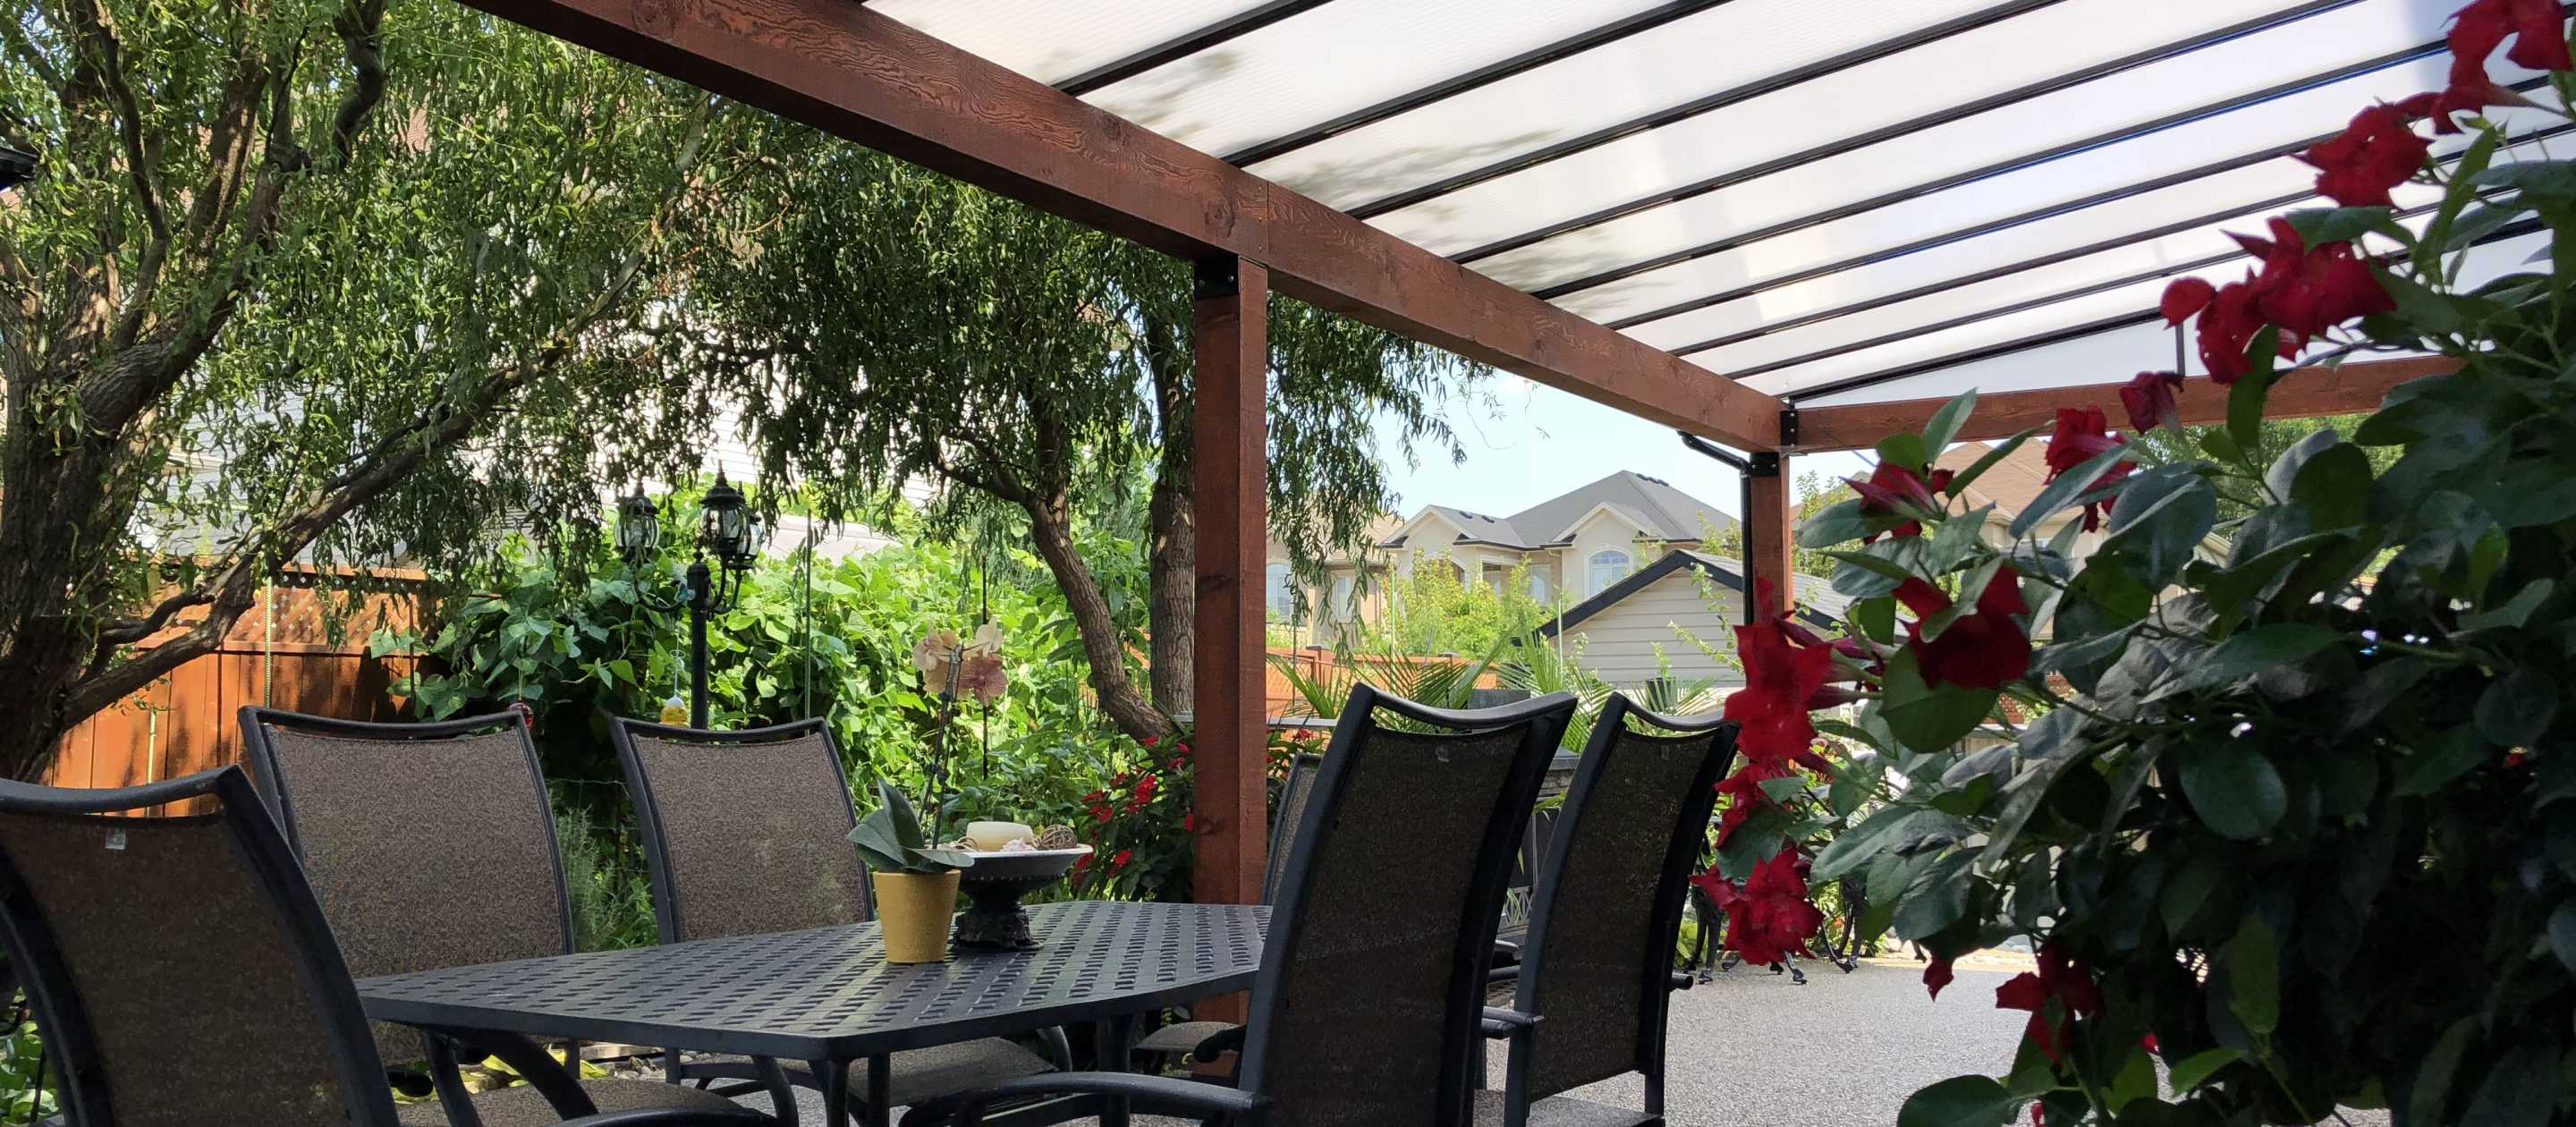 Patio Covers Made For Your Canadian Backyard | Lumon